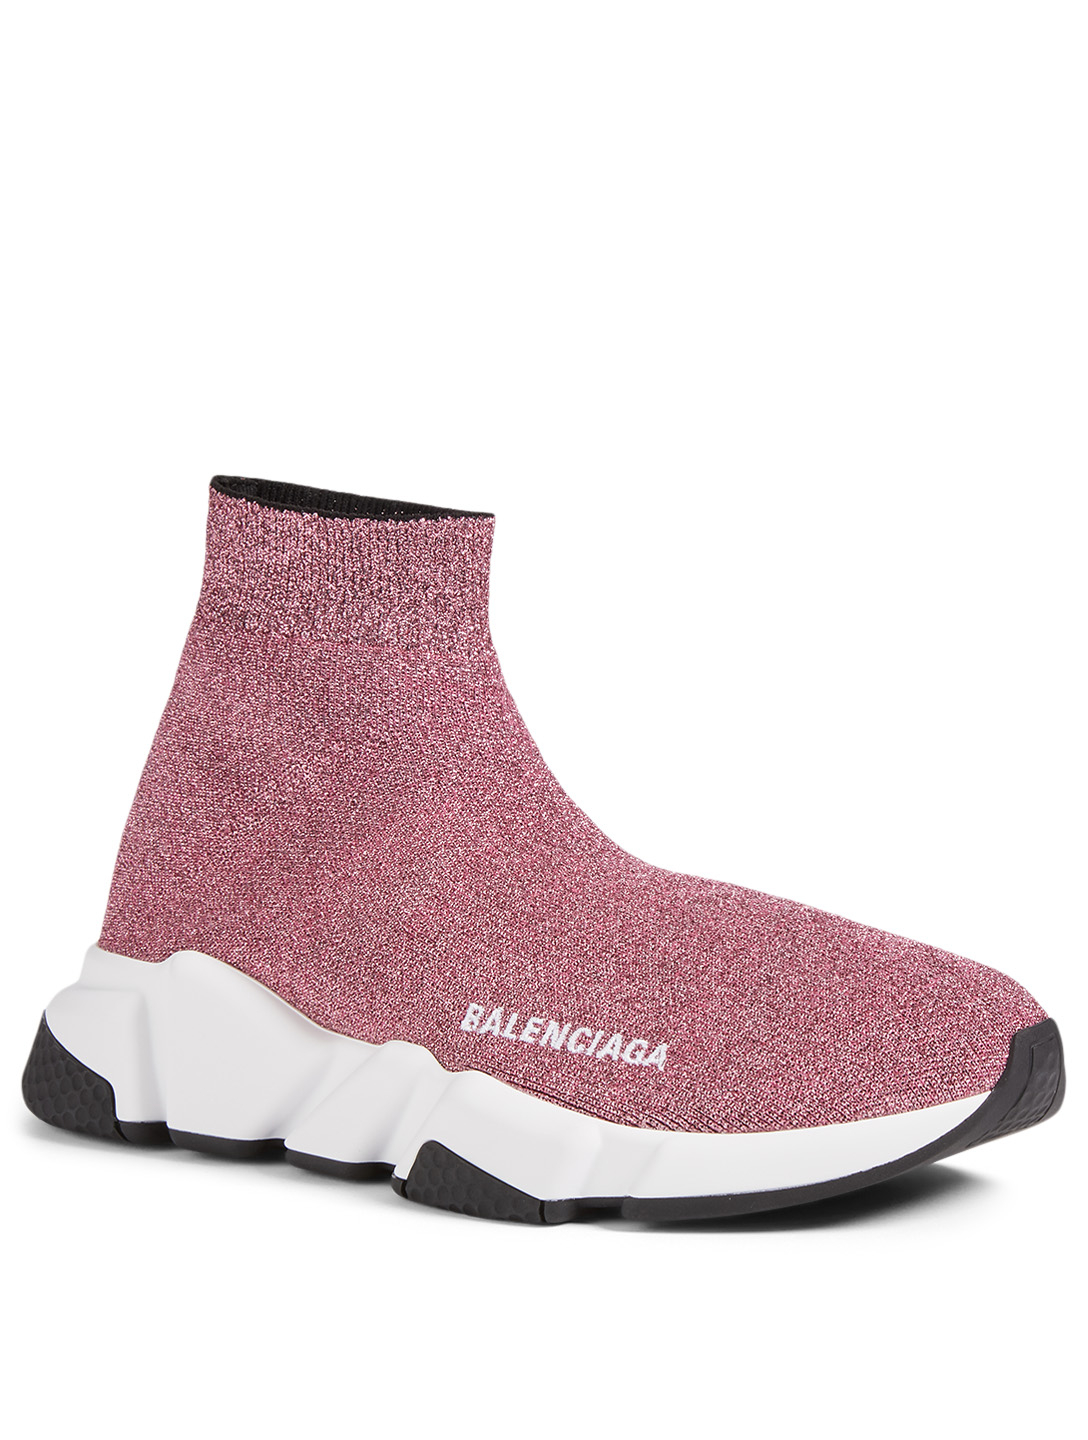 BALENCIAGA Speed Sparkle Knit High-Top Sock Sneakers Women's Pink